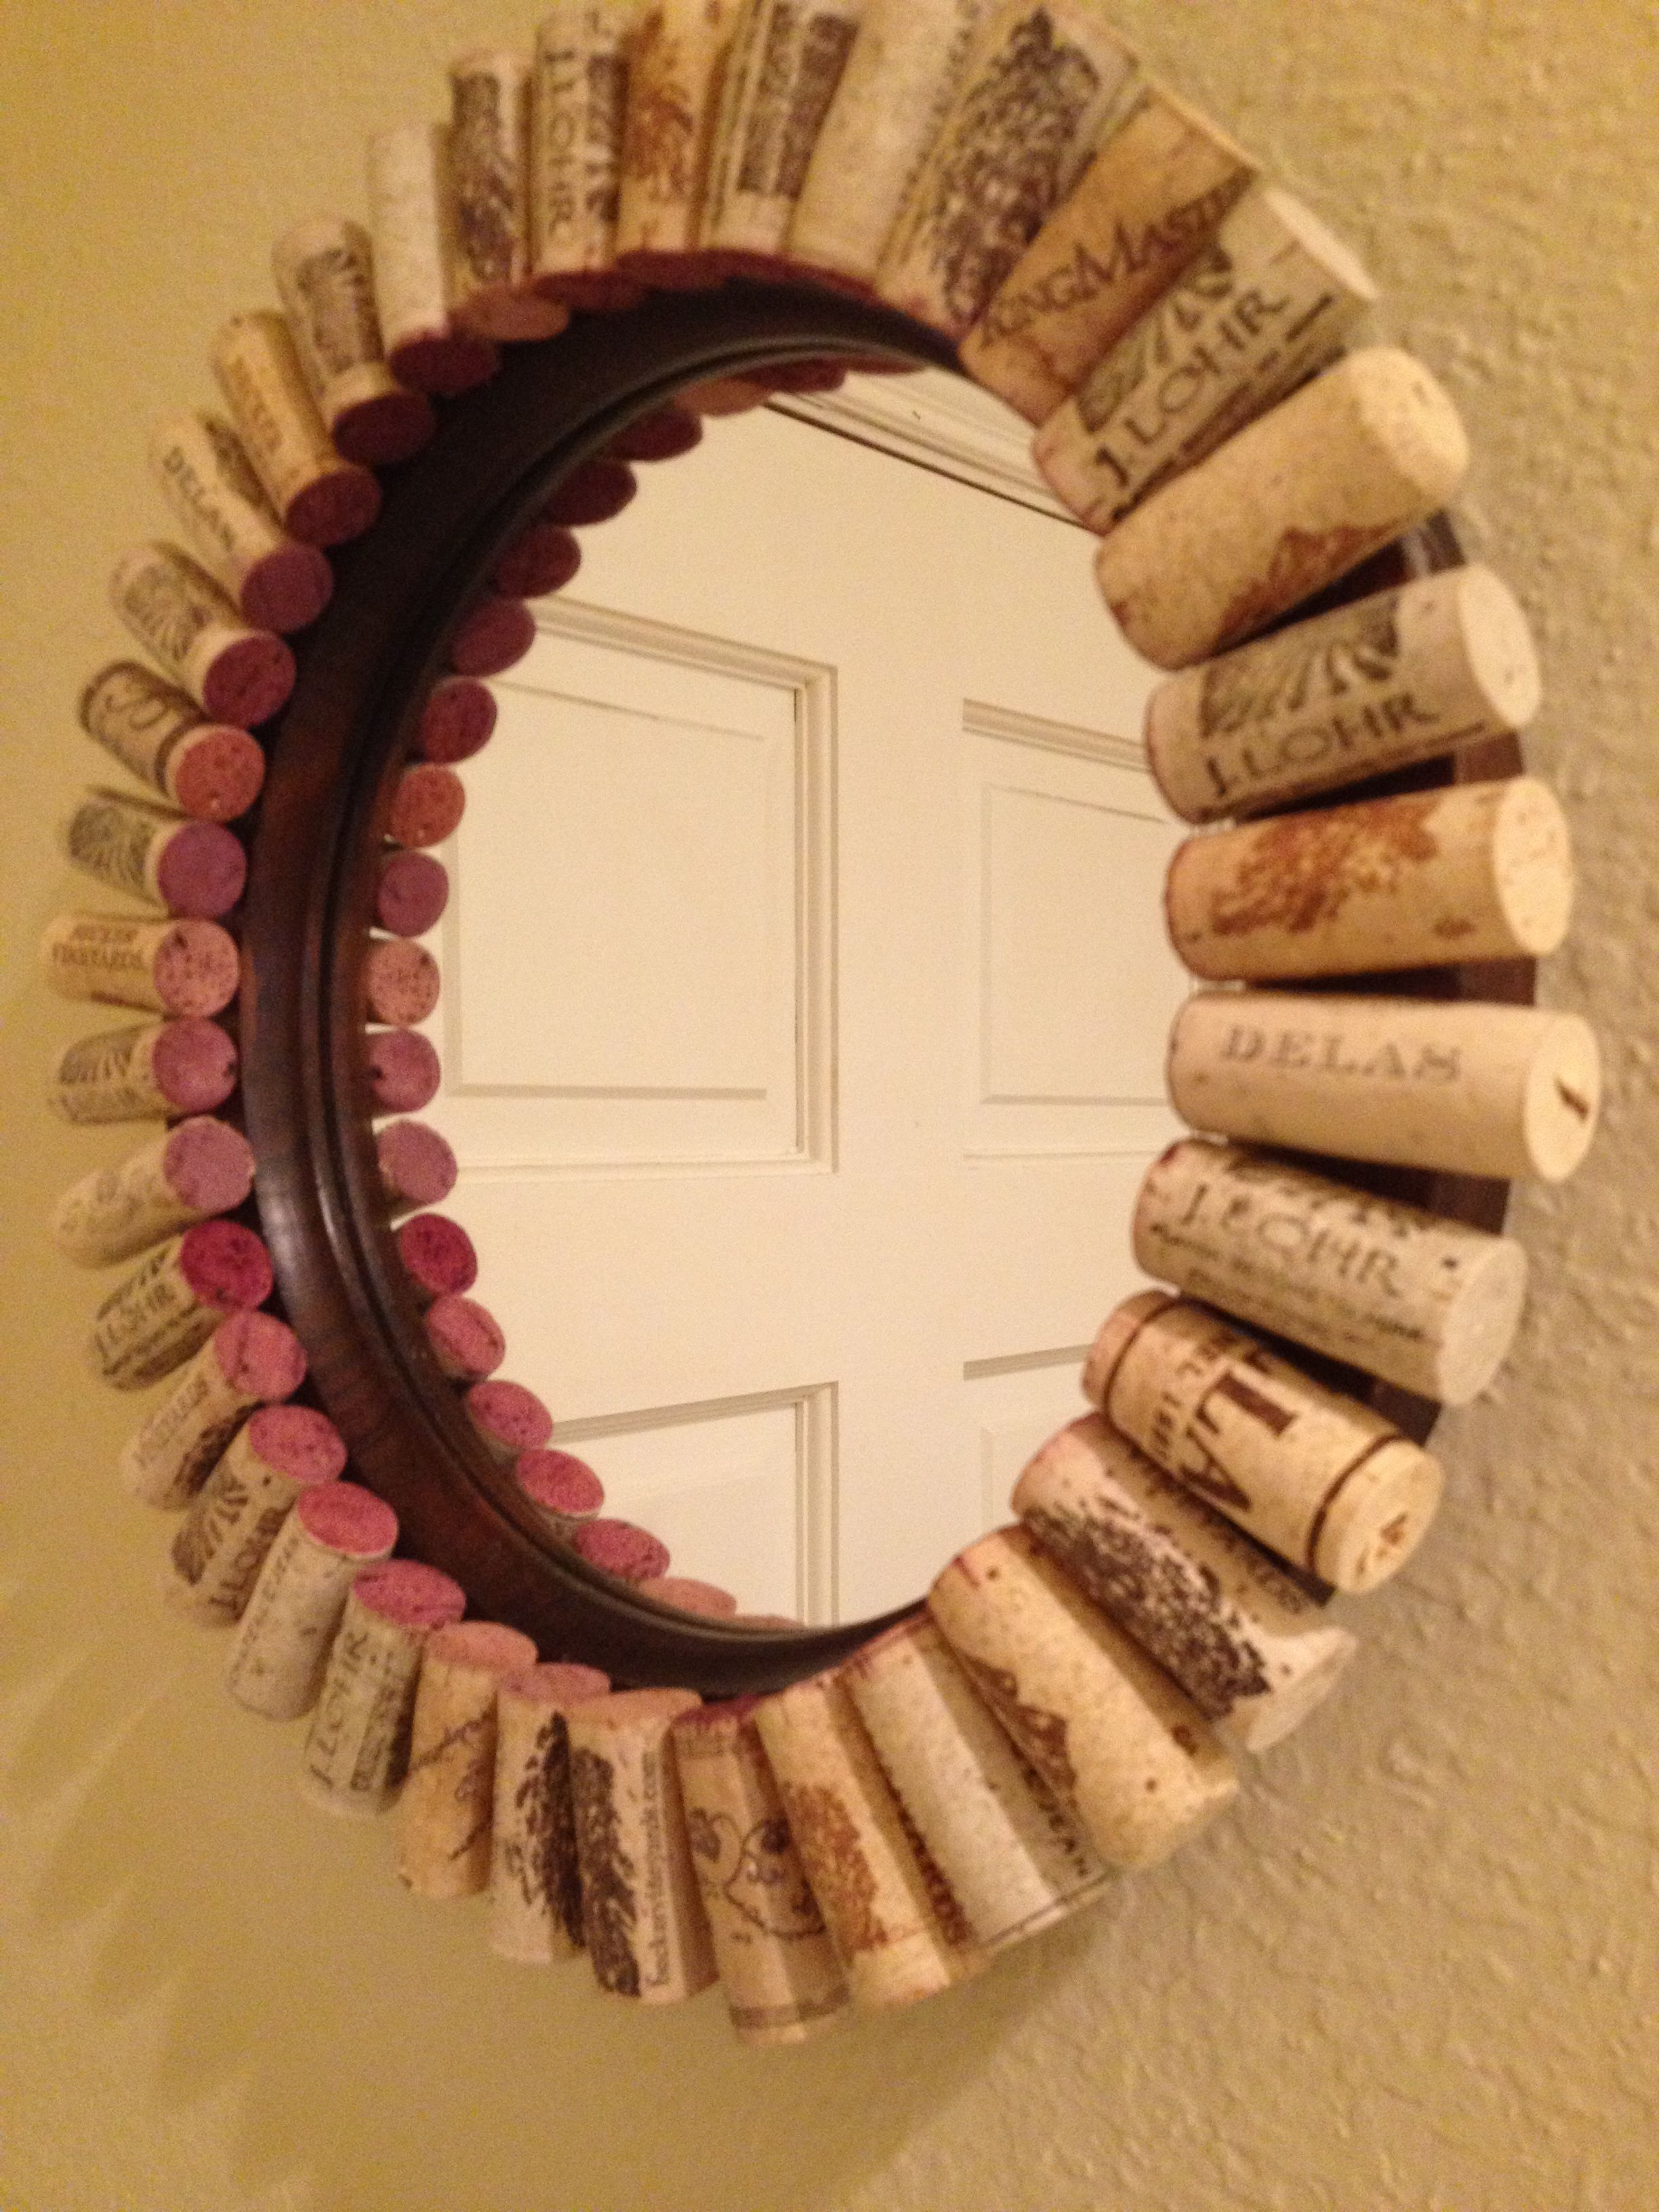 Recycled wine corks made into a frame for a repurposed round mirror ...